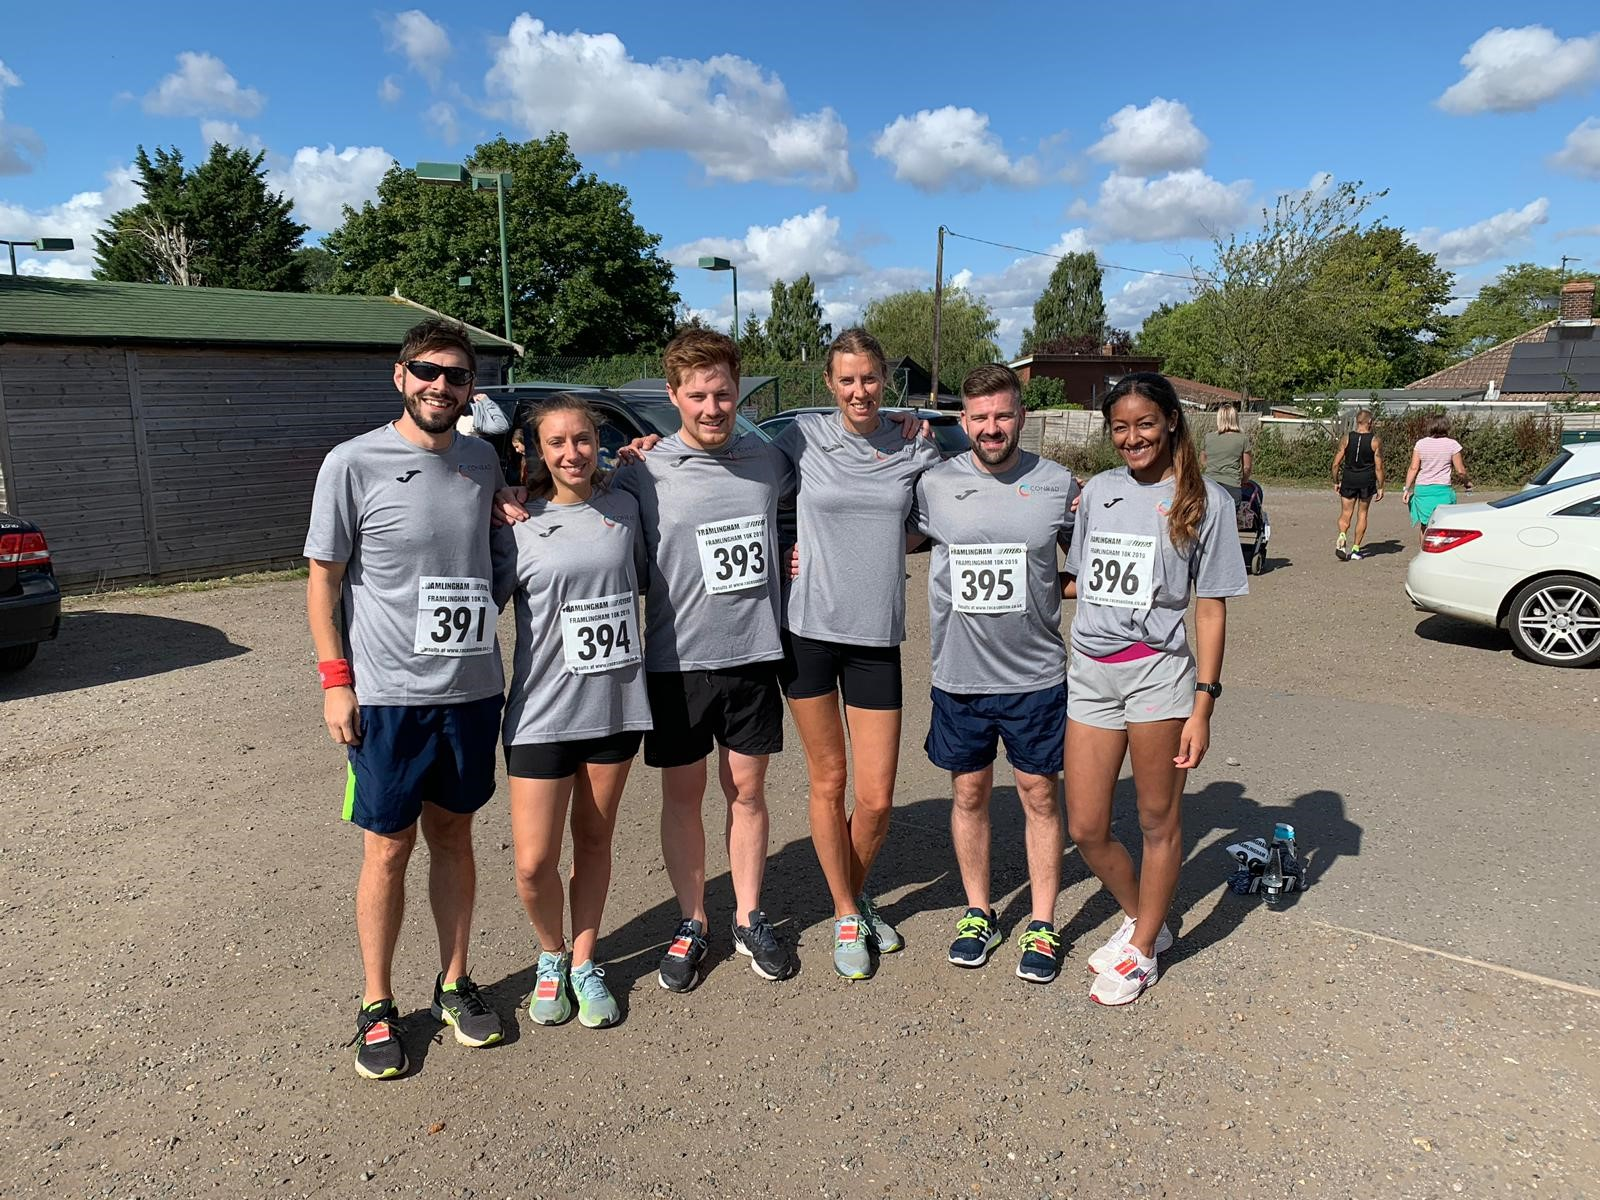 Group picture of Conrad runners before taking part in the 10k